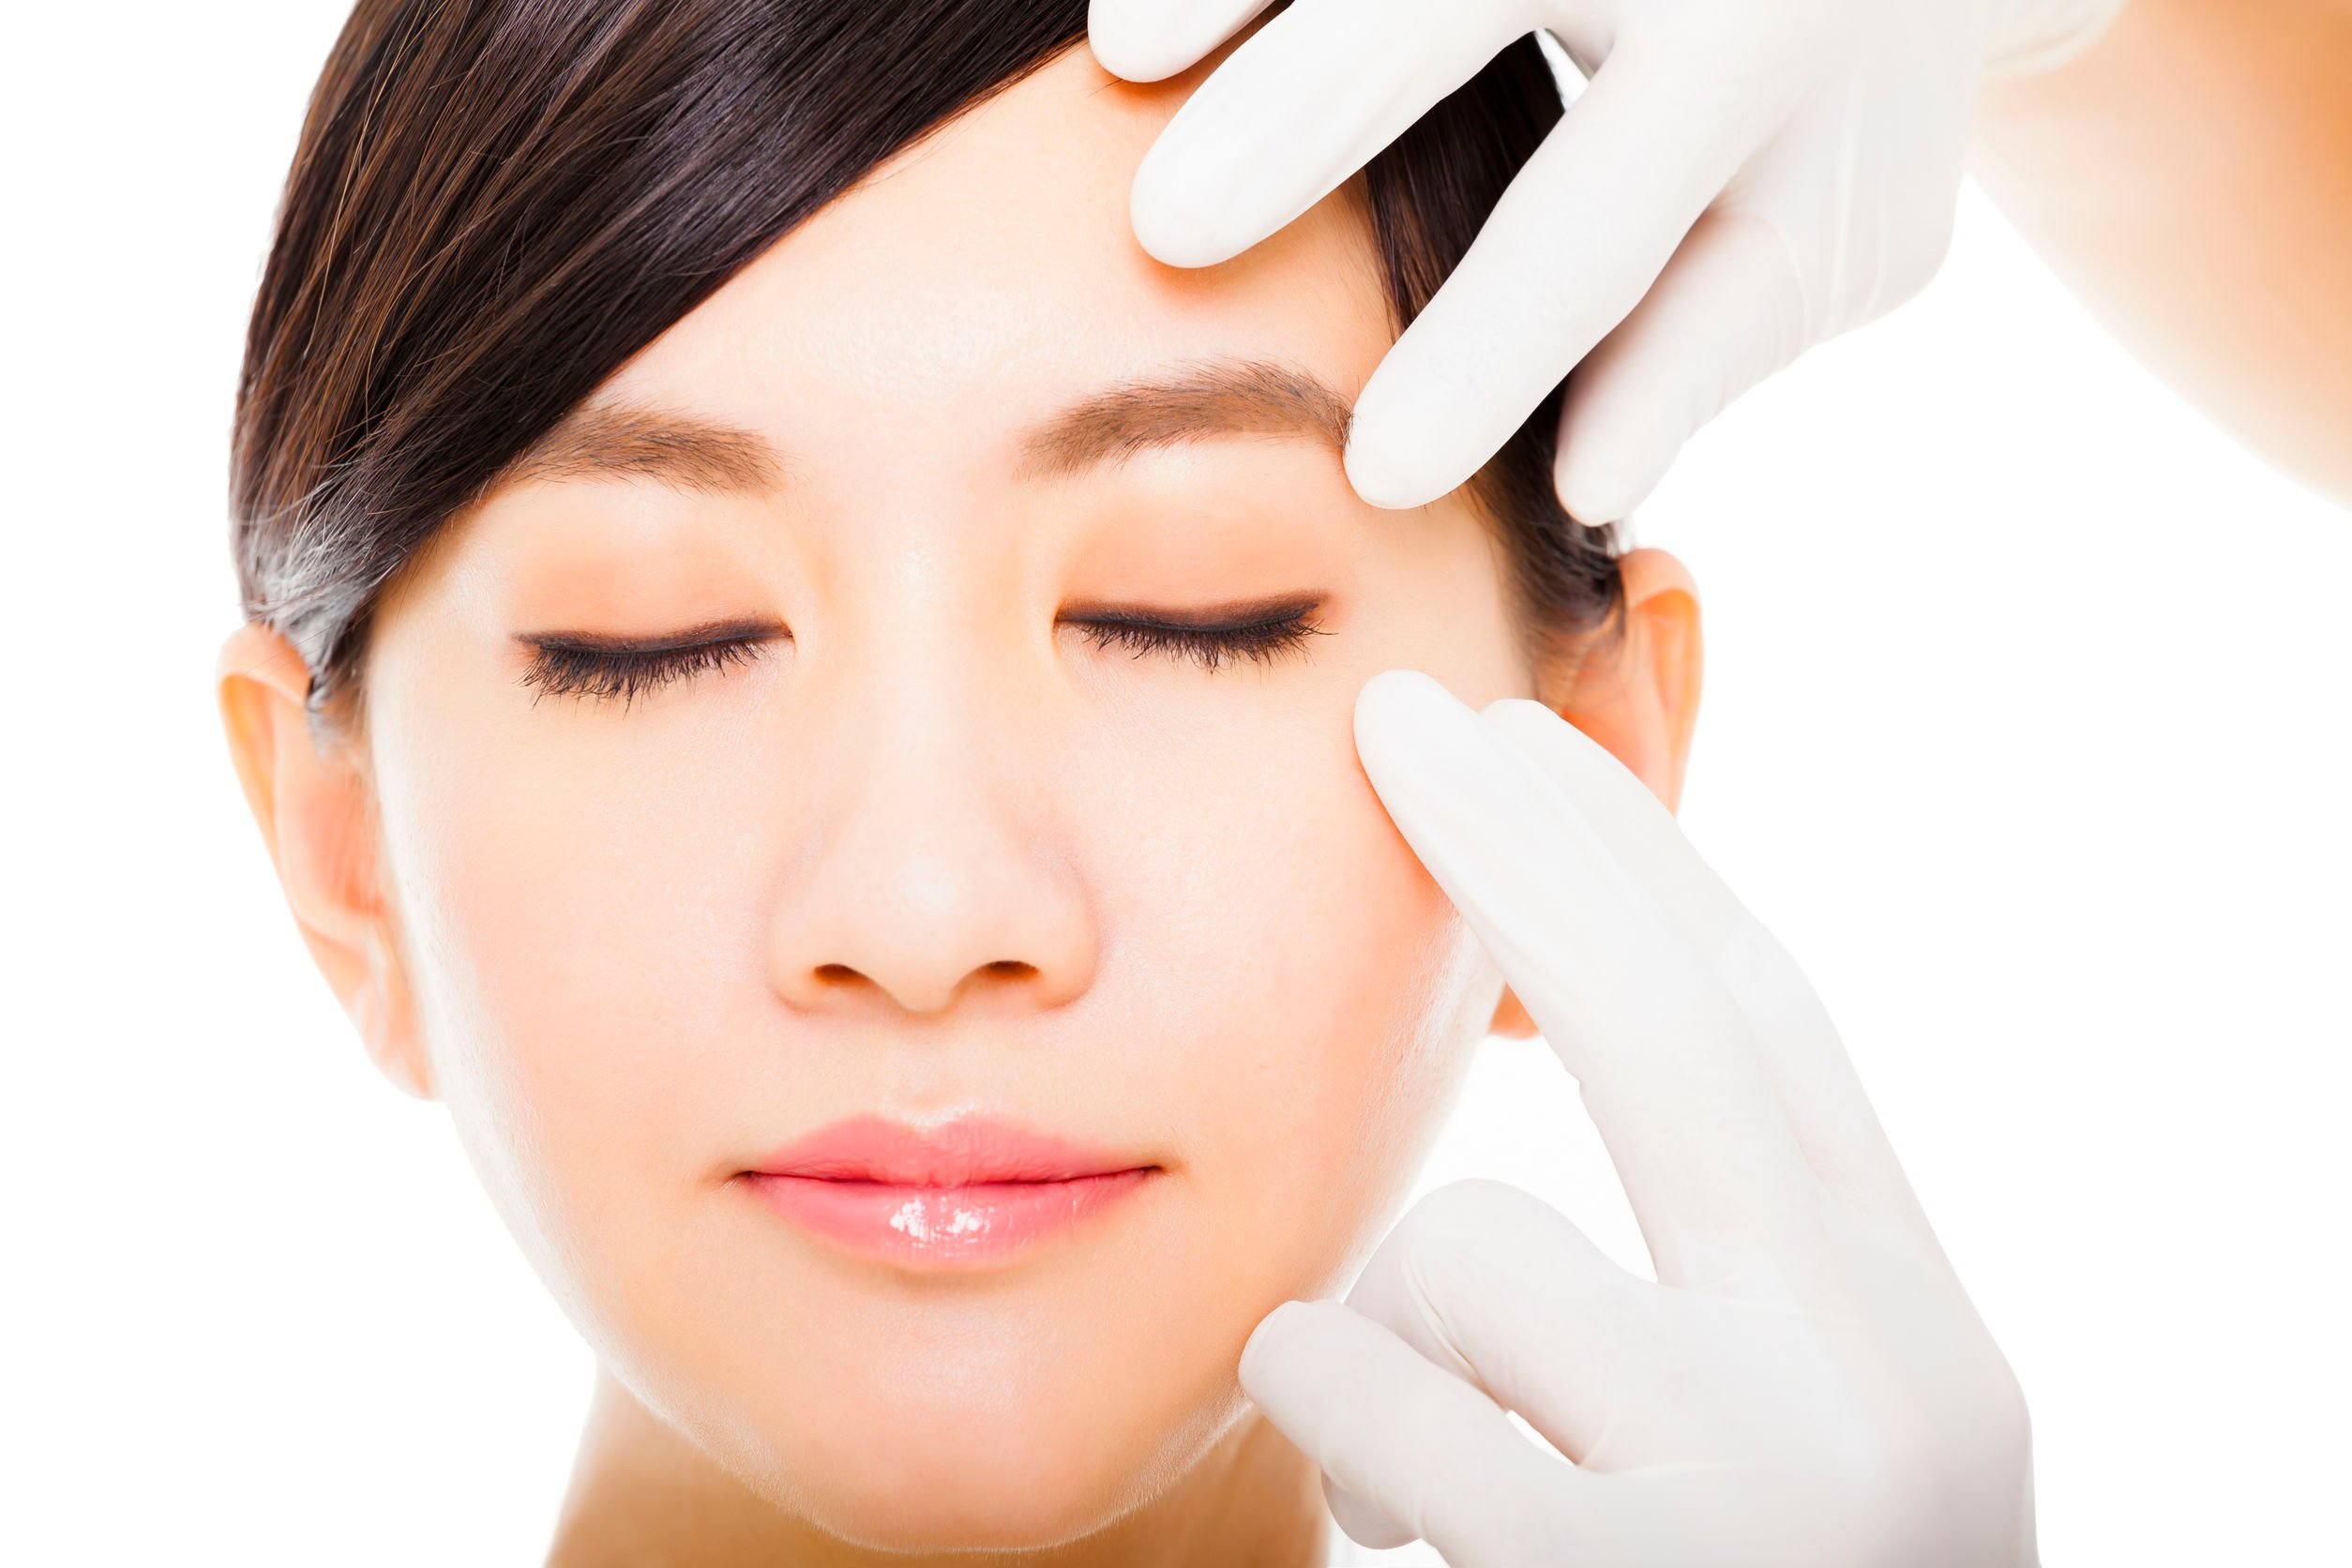 Facial Implants Cost in India